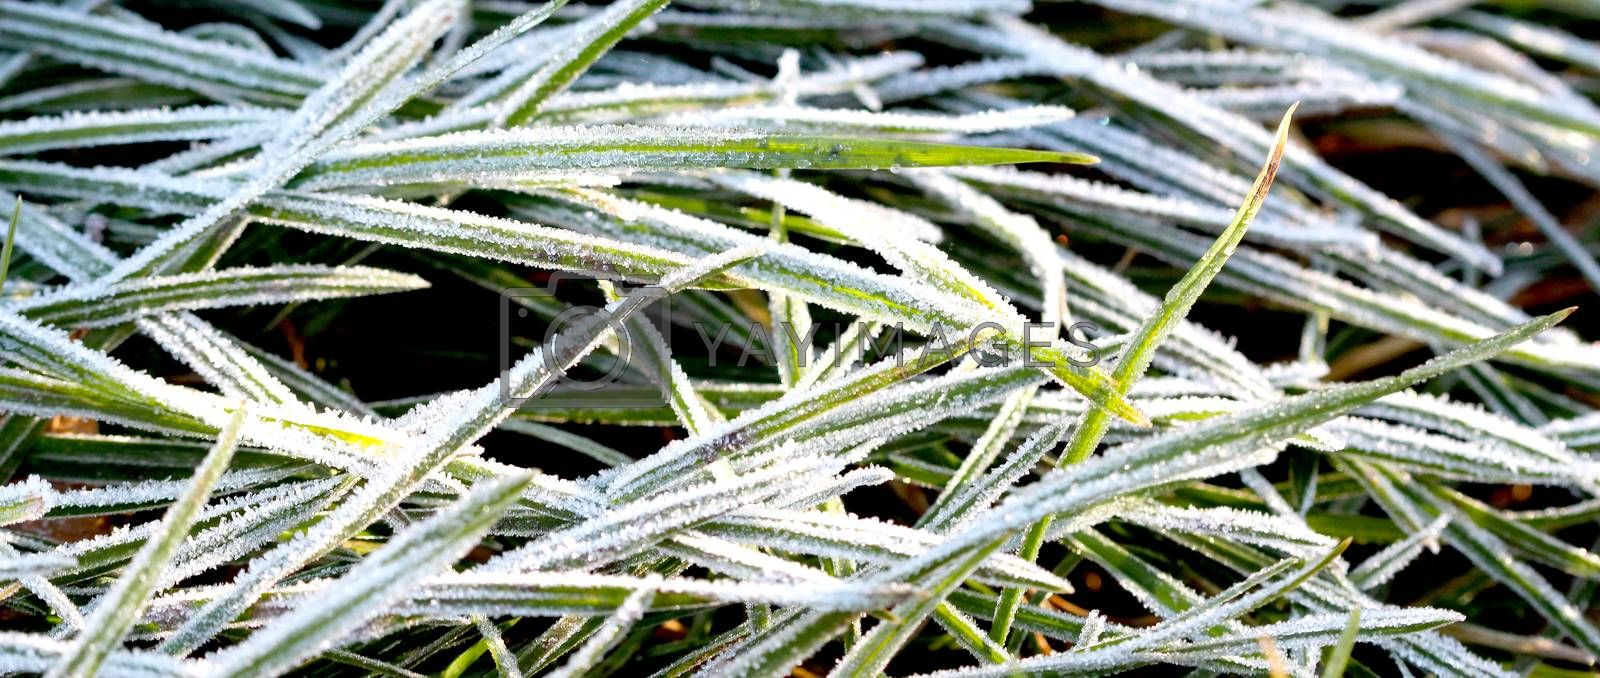 Royalty free image of november morning frost on a plants by nehru